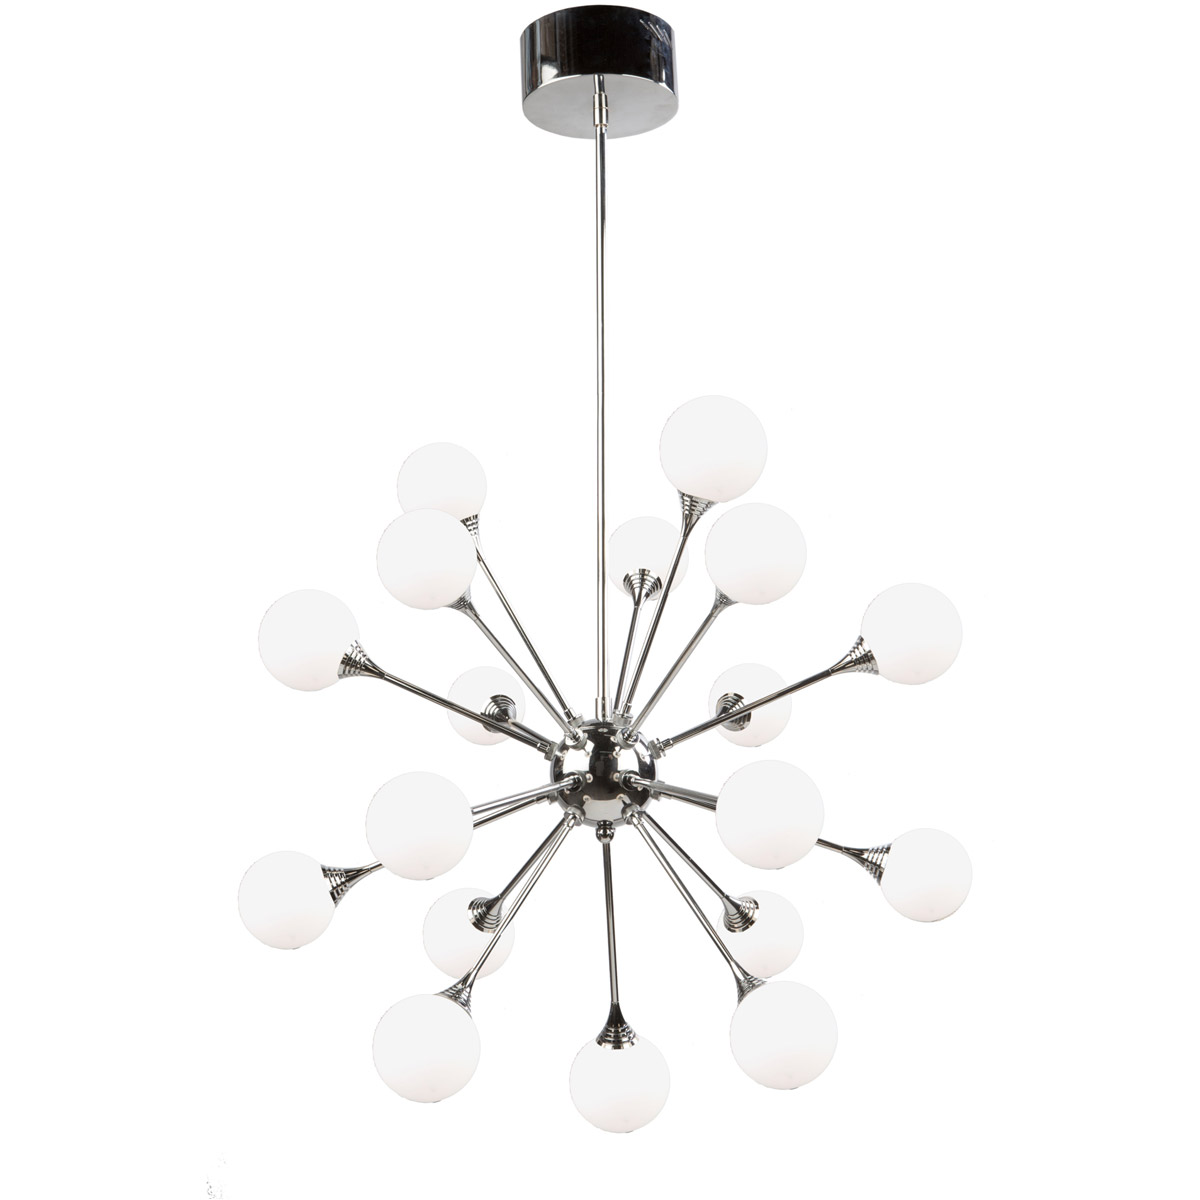 Chandeliers 18 Light Bulb Fixture With Chrome Finish Metal